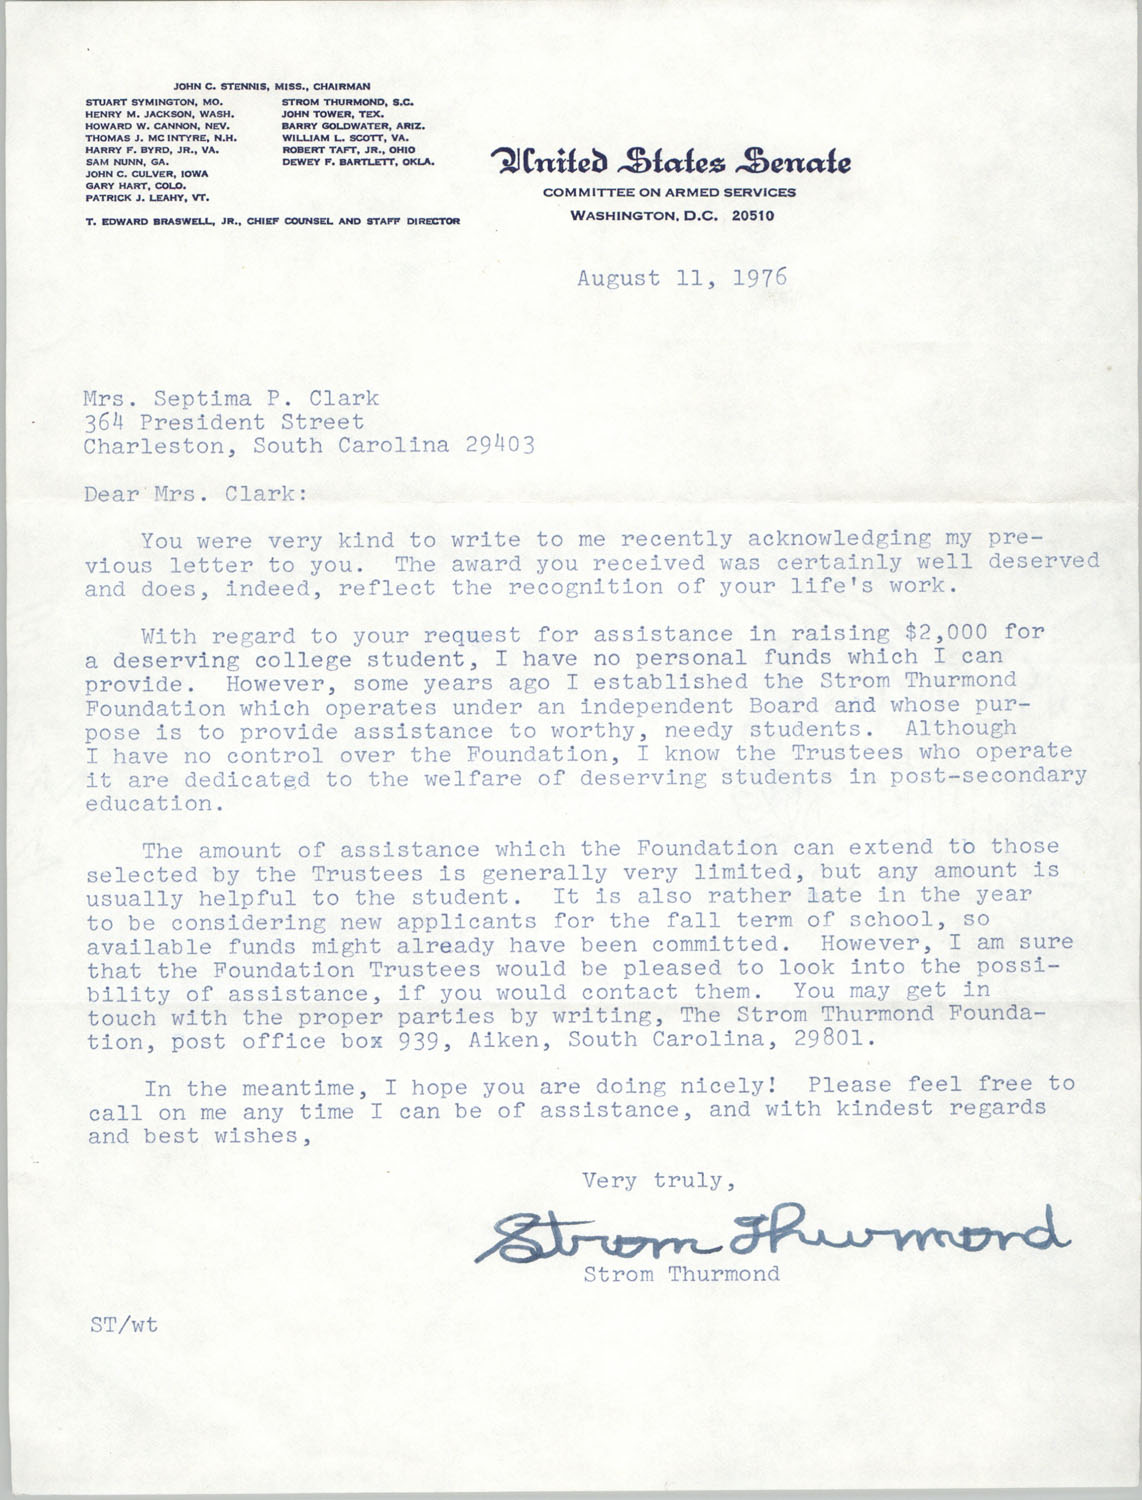 Letter from Strom Thurmond to Septima P. Clark, August 11, 1976